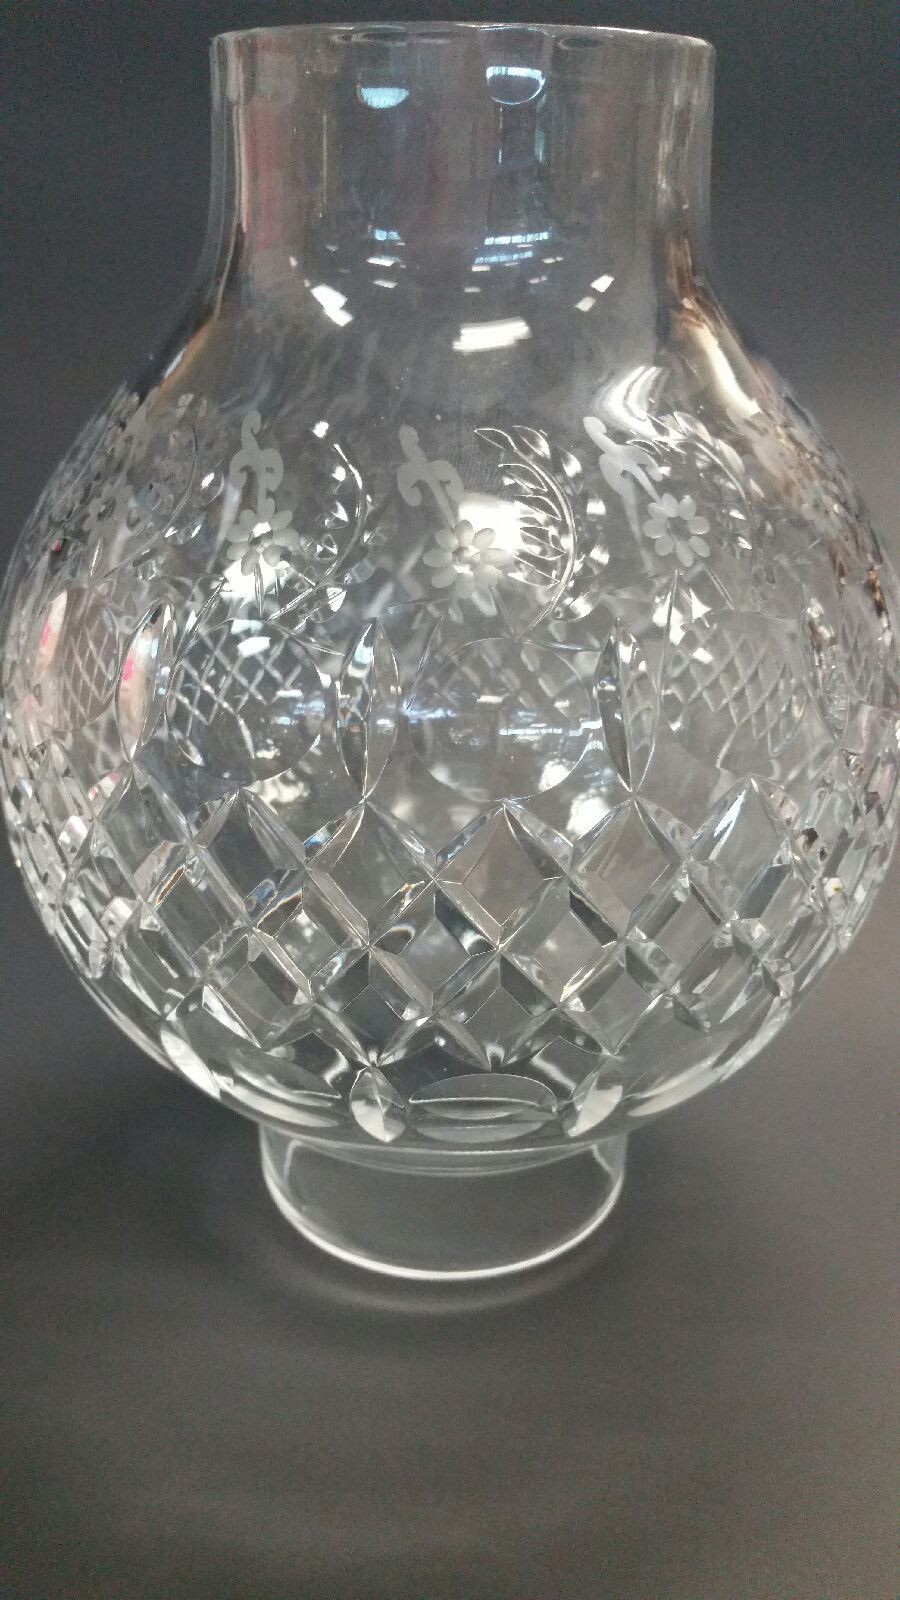 rogaska crystal vase of 30 best abp cut glass images on pinterest cut glass chips and throughout 30 best abp cut glass images on pinterest cut glass chips and french fries